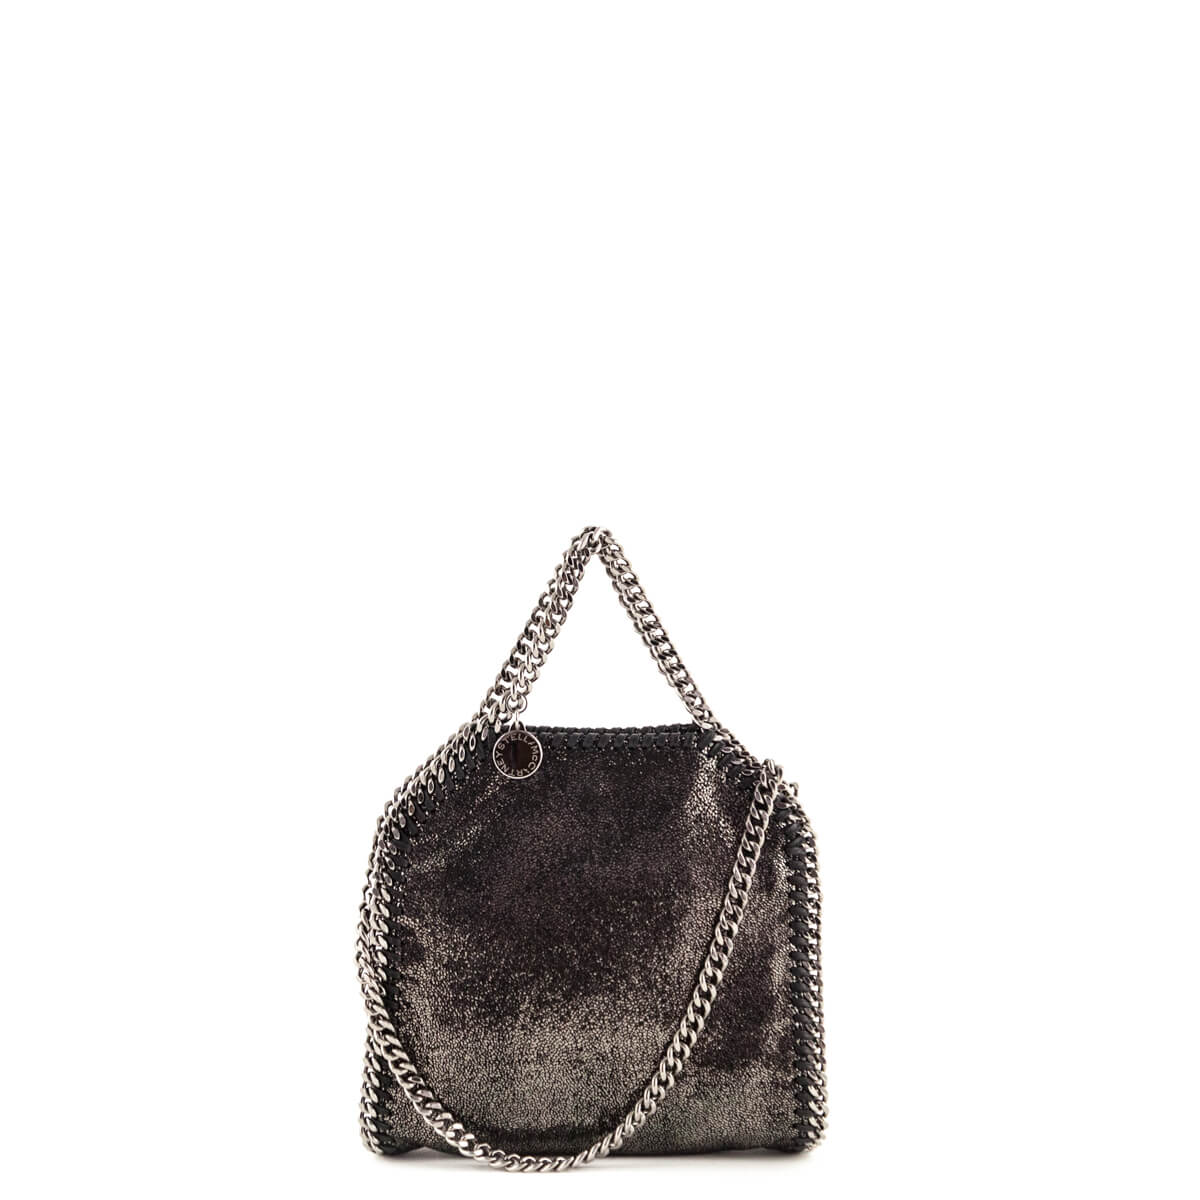 78b671718bc Stella McCartney Ruthenium Shiny Dot Tiny Falabella Bag - LOVE that BAG -  Preowned Authentic Designer ...